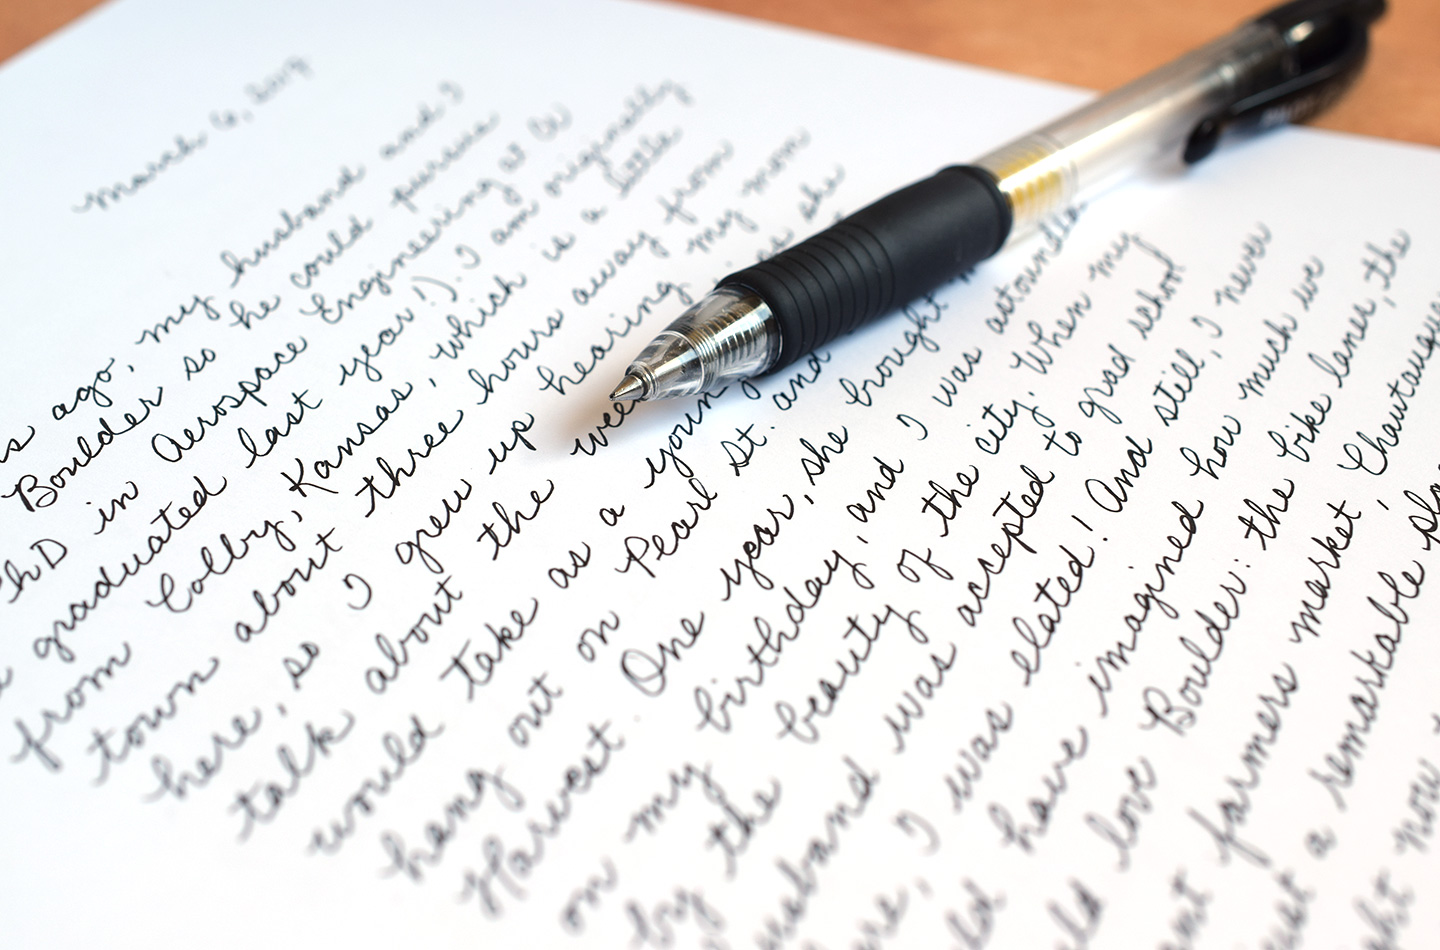 8 Tips to Improve Your Handwriting (Plus a Free Worksheet)